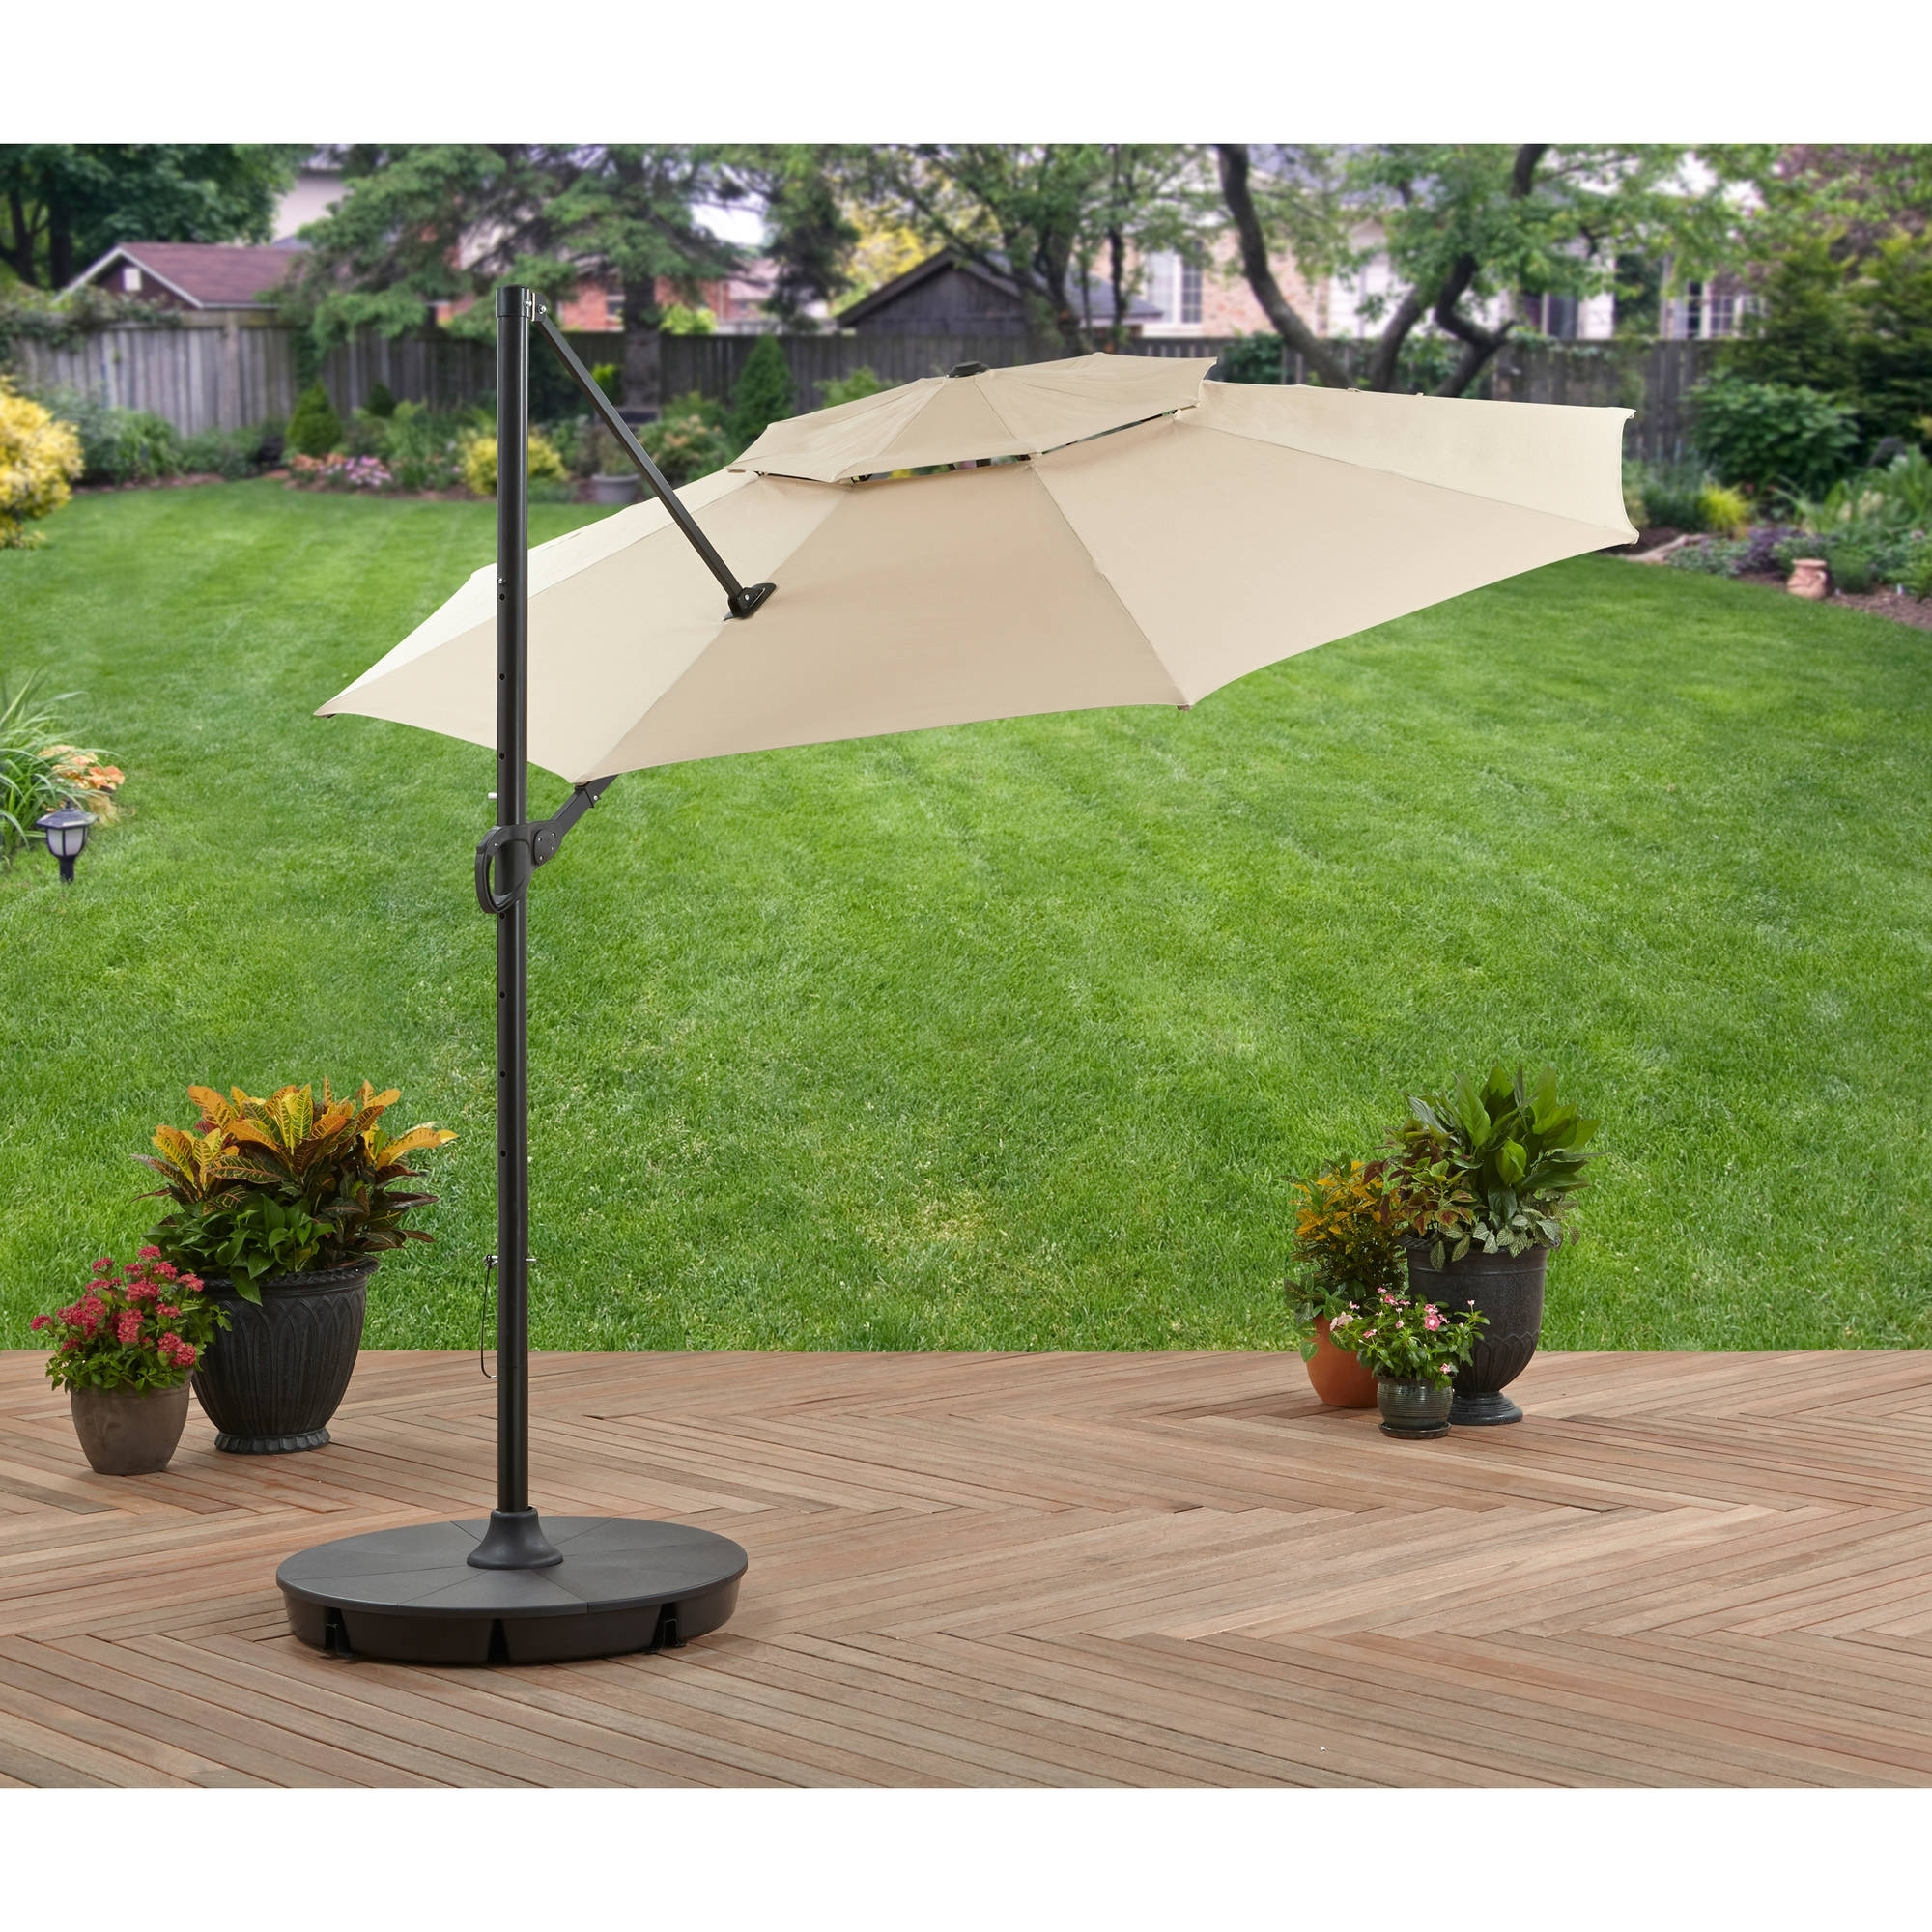 Sunbrella Patio Umbrellas At Walmart Within Favorite Better Homes And Gardens 9' Market Umbrella, Red – Walmart (View 19 of 20)